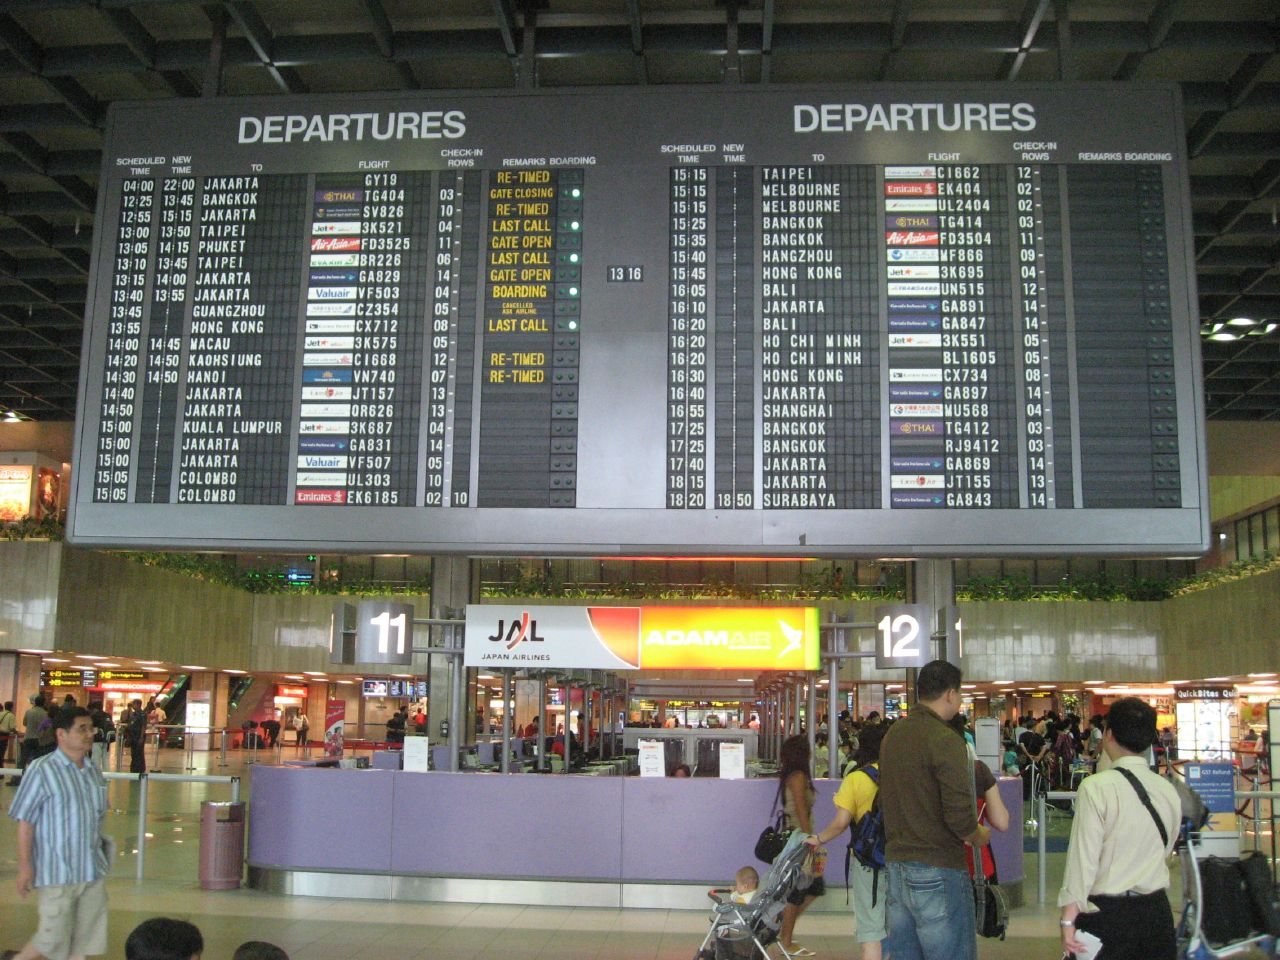 Departure board at Singapore Changi International Airport